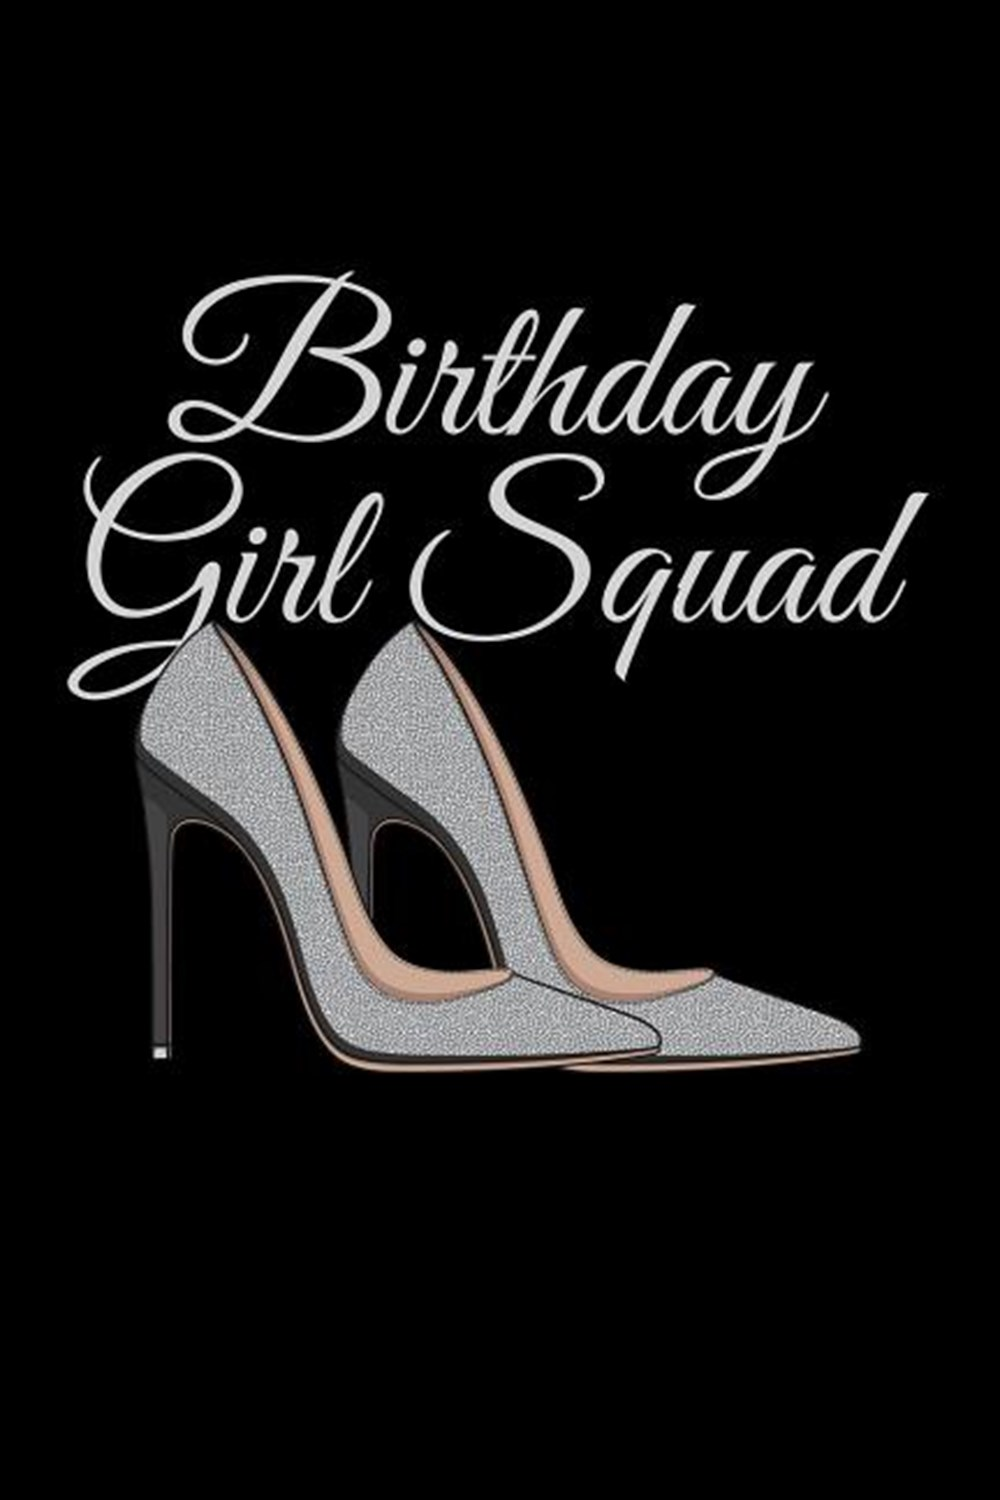 Birthday Girl Squad Blank Paper Sketch Book - Artist Sketch Pad Journal for Sketching, Doodling, Dra